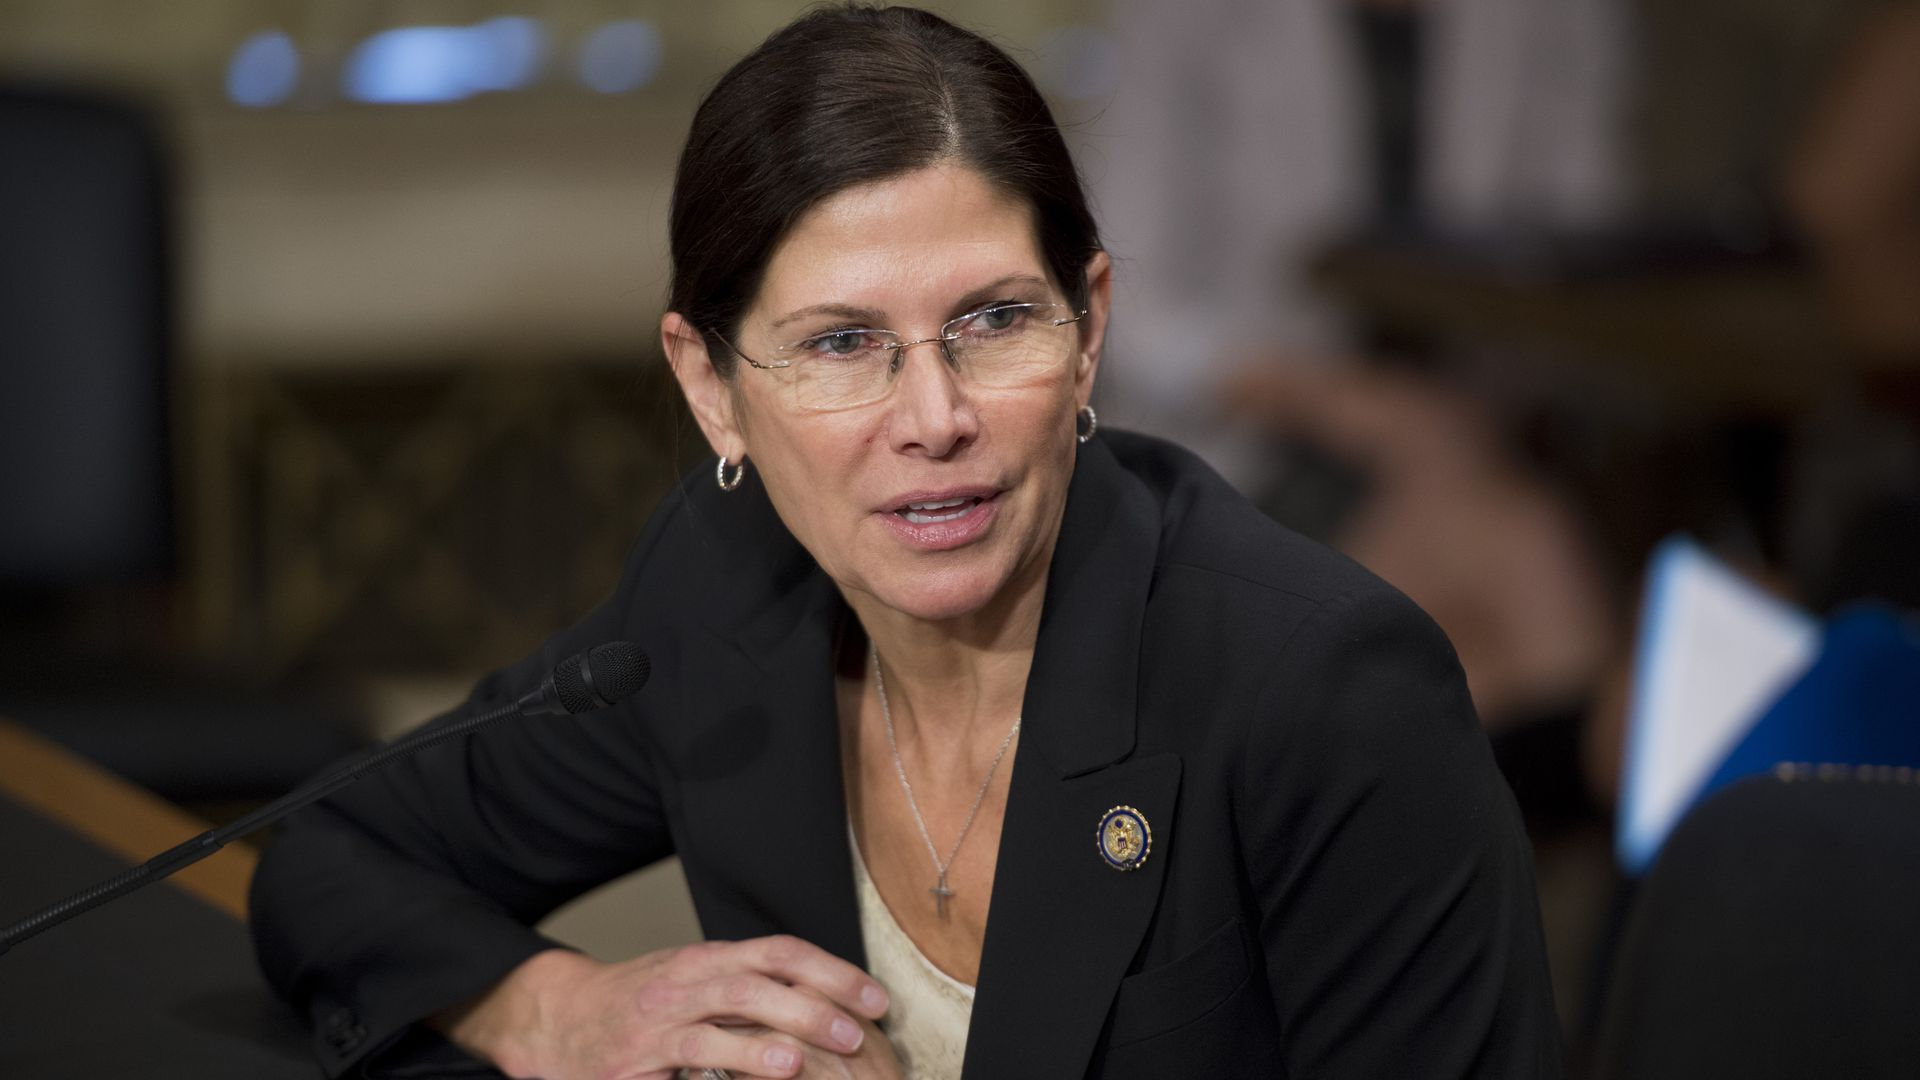 Mary Bono sitting in the house of representatives with suit and glasses on.